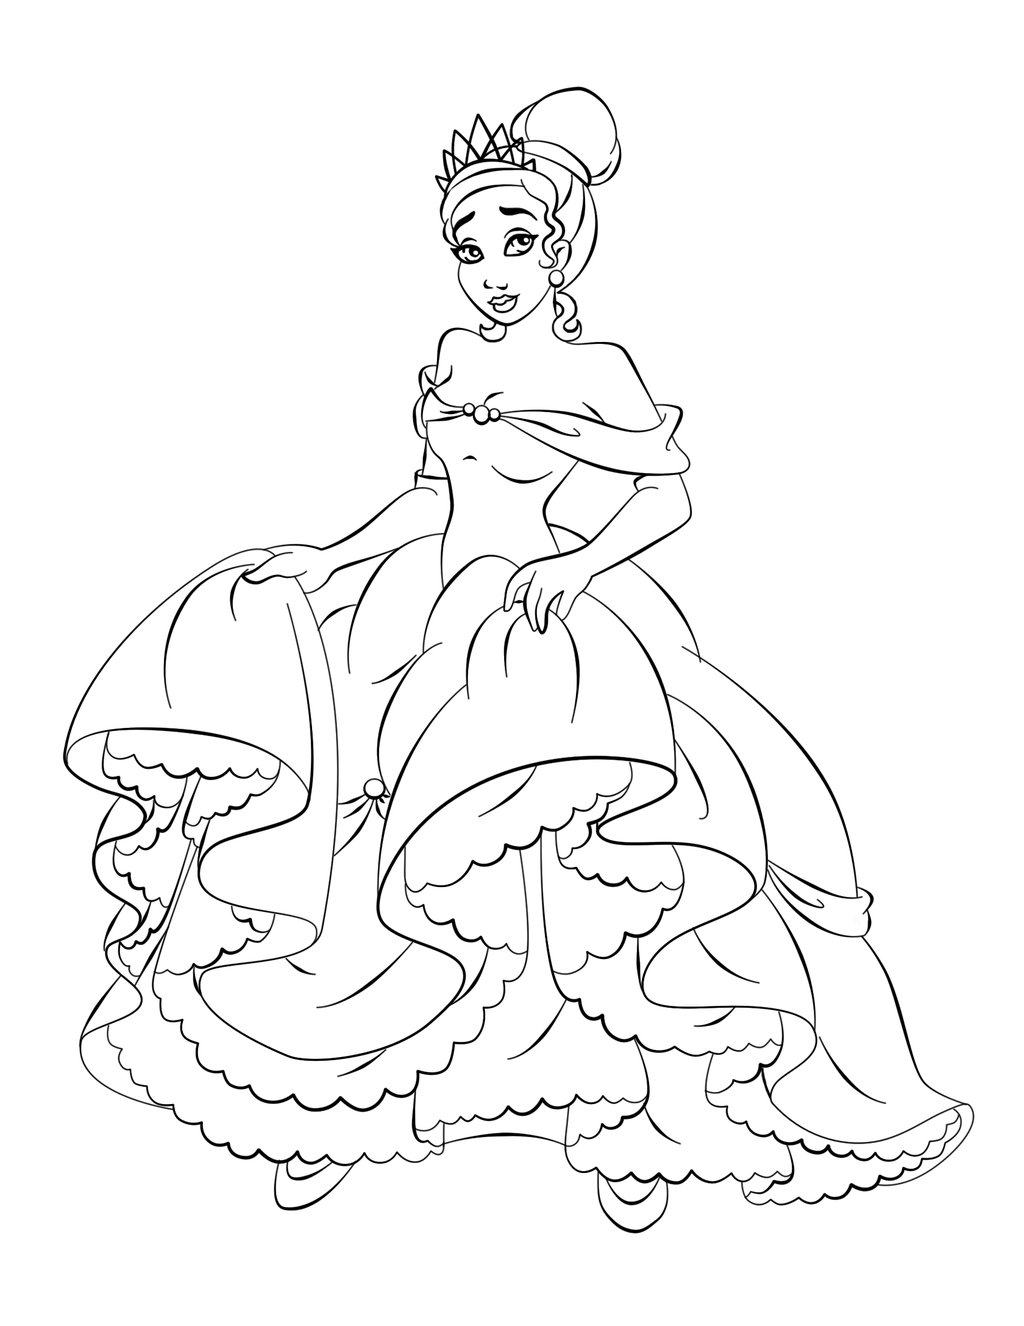 free barbie halloween coloring pages - photo#28